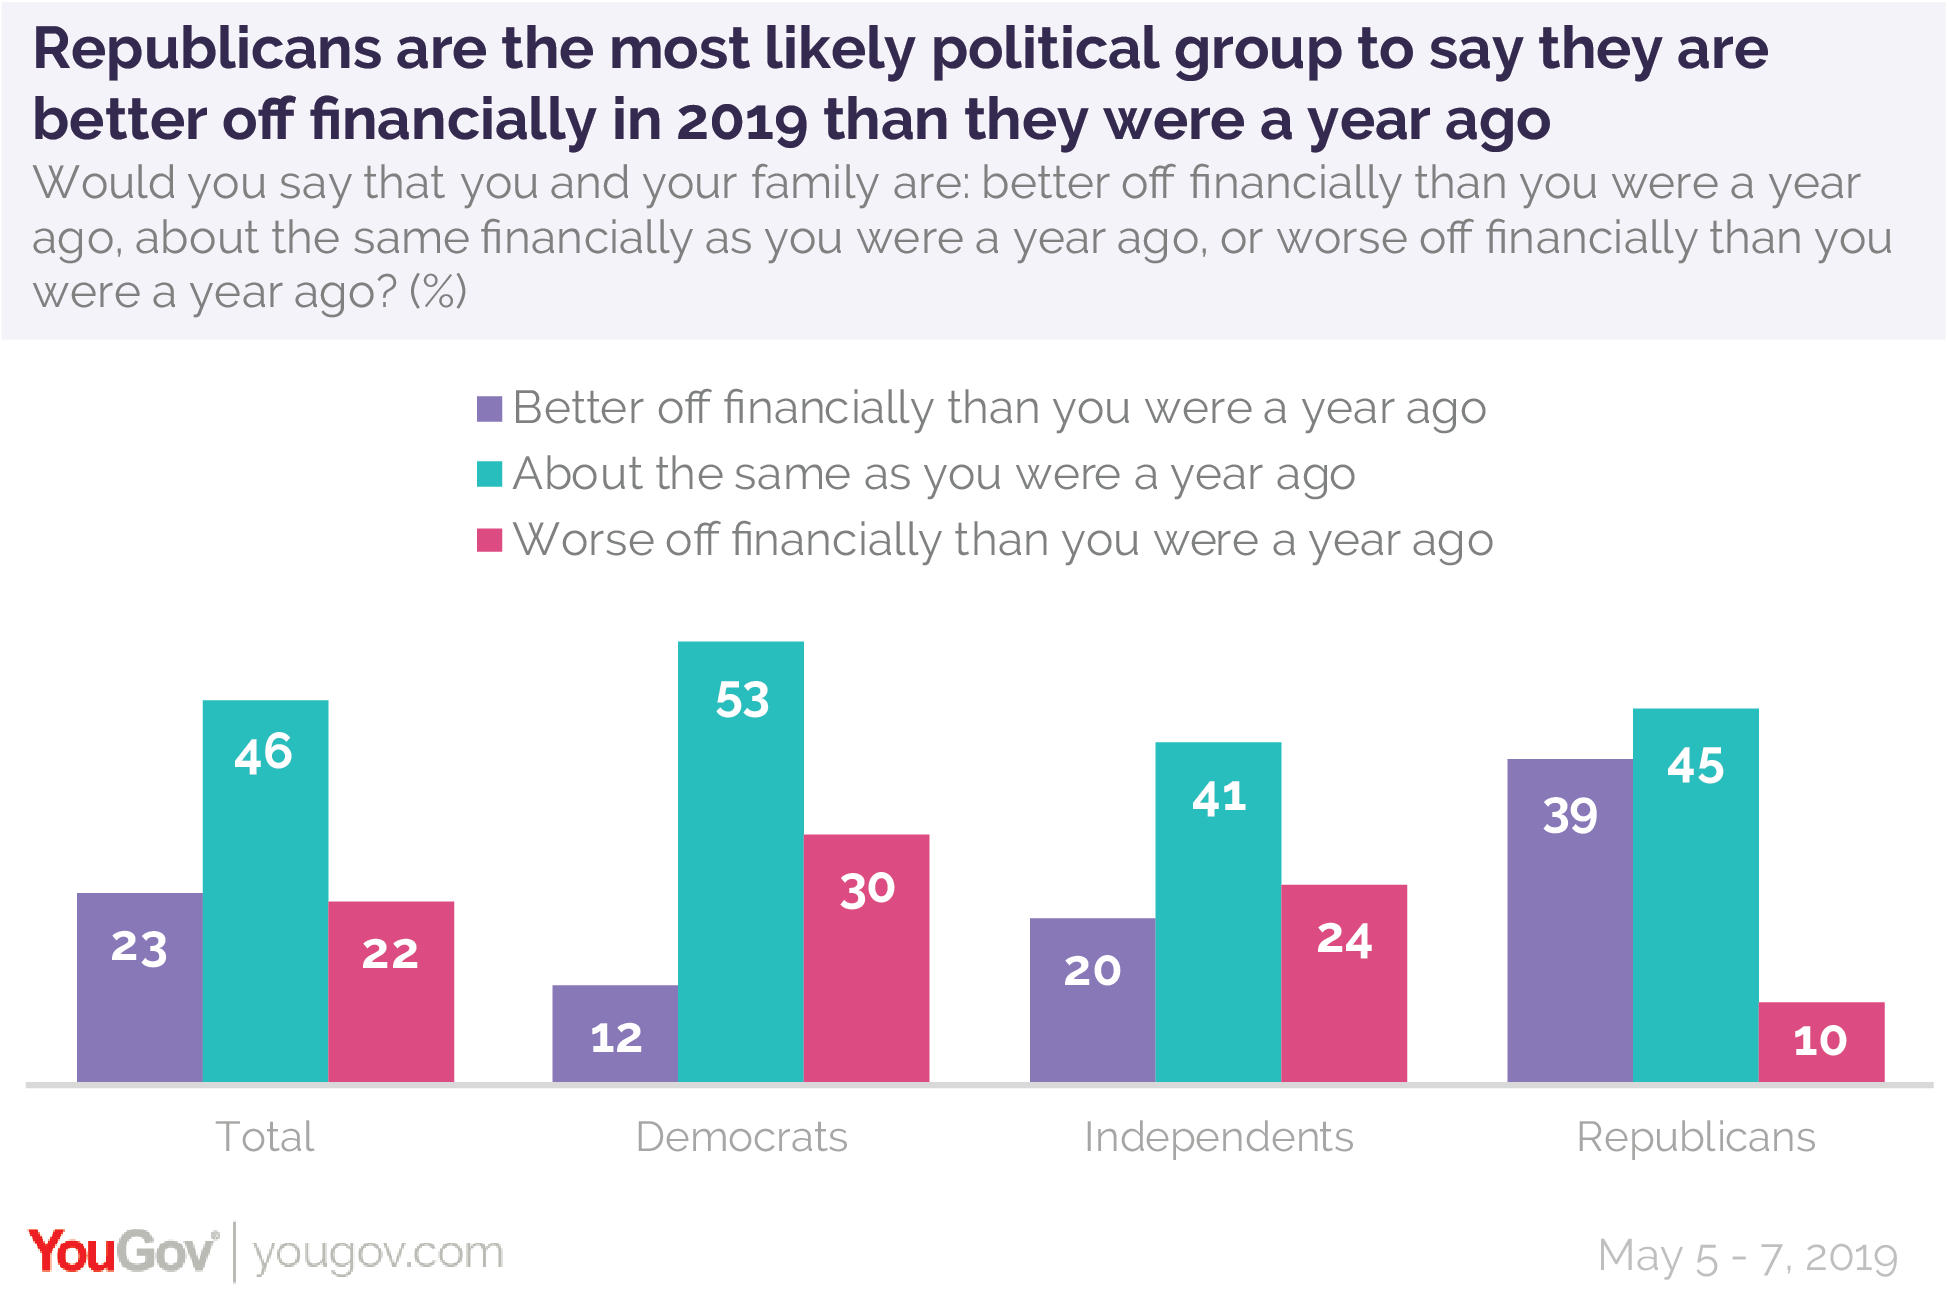 Republicans are the most likely political group to say they are better off financially in 2019 than they were a year ago